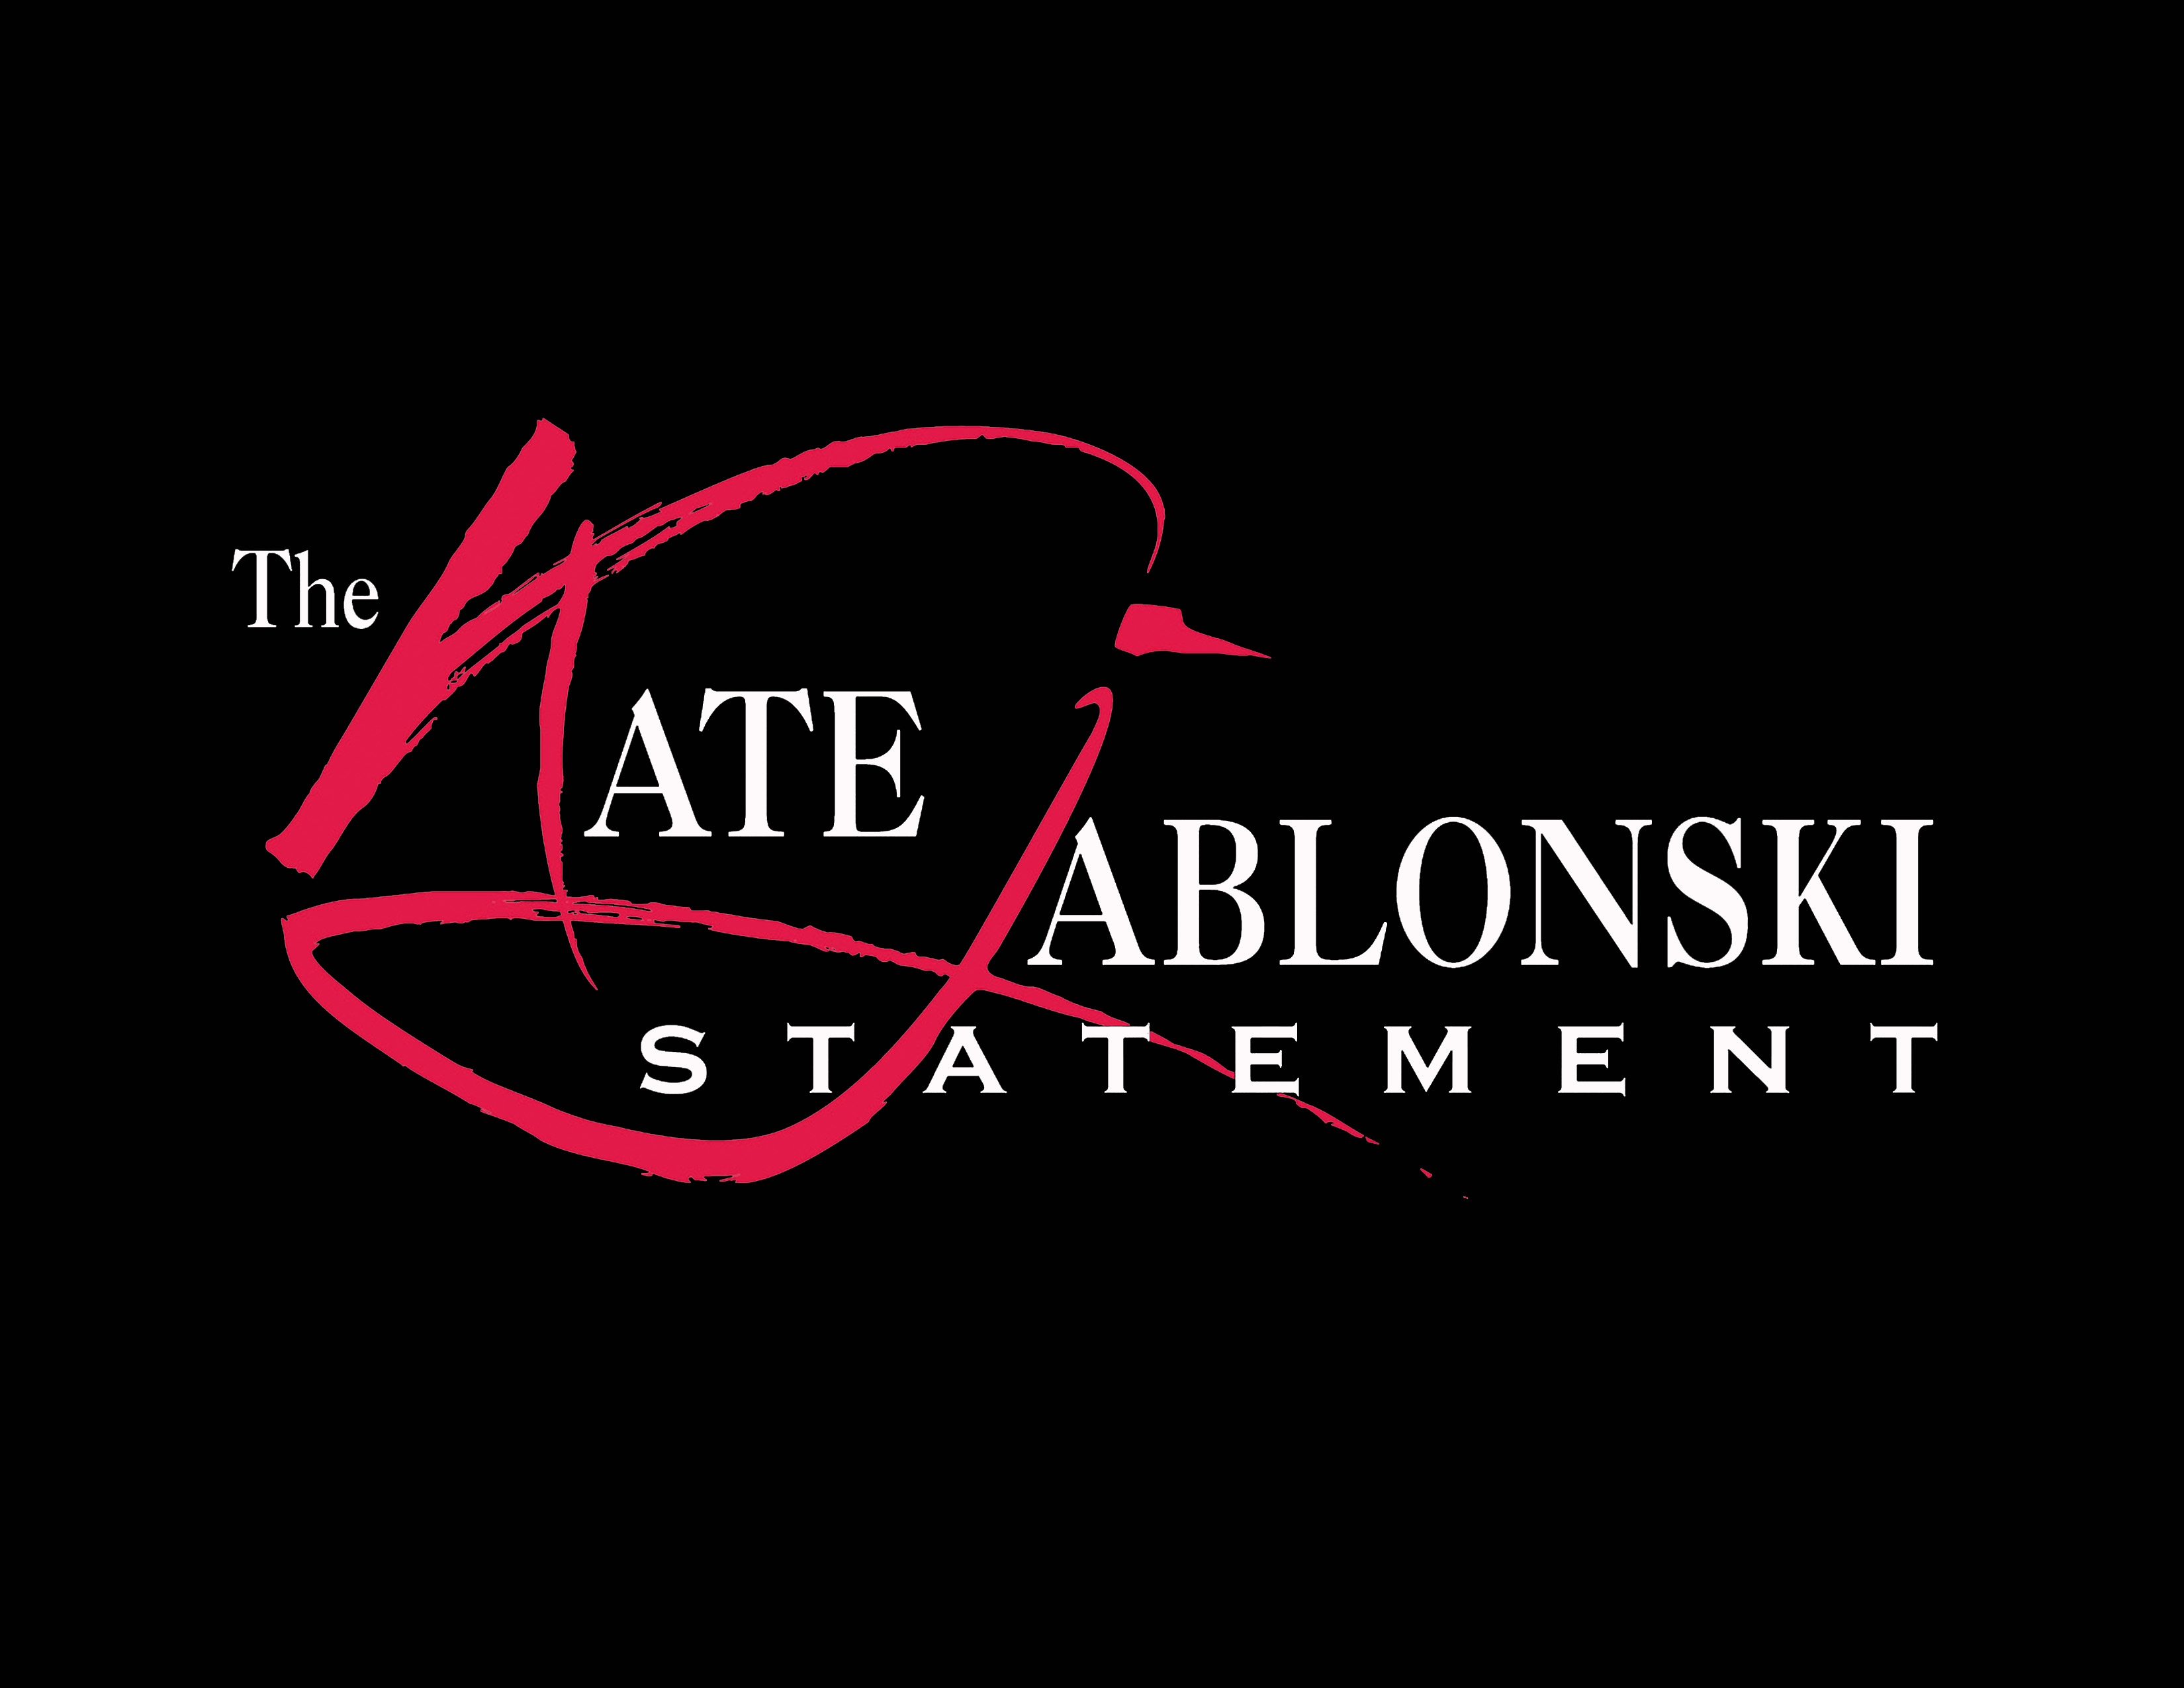 The Kate Jablonski Statement